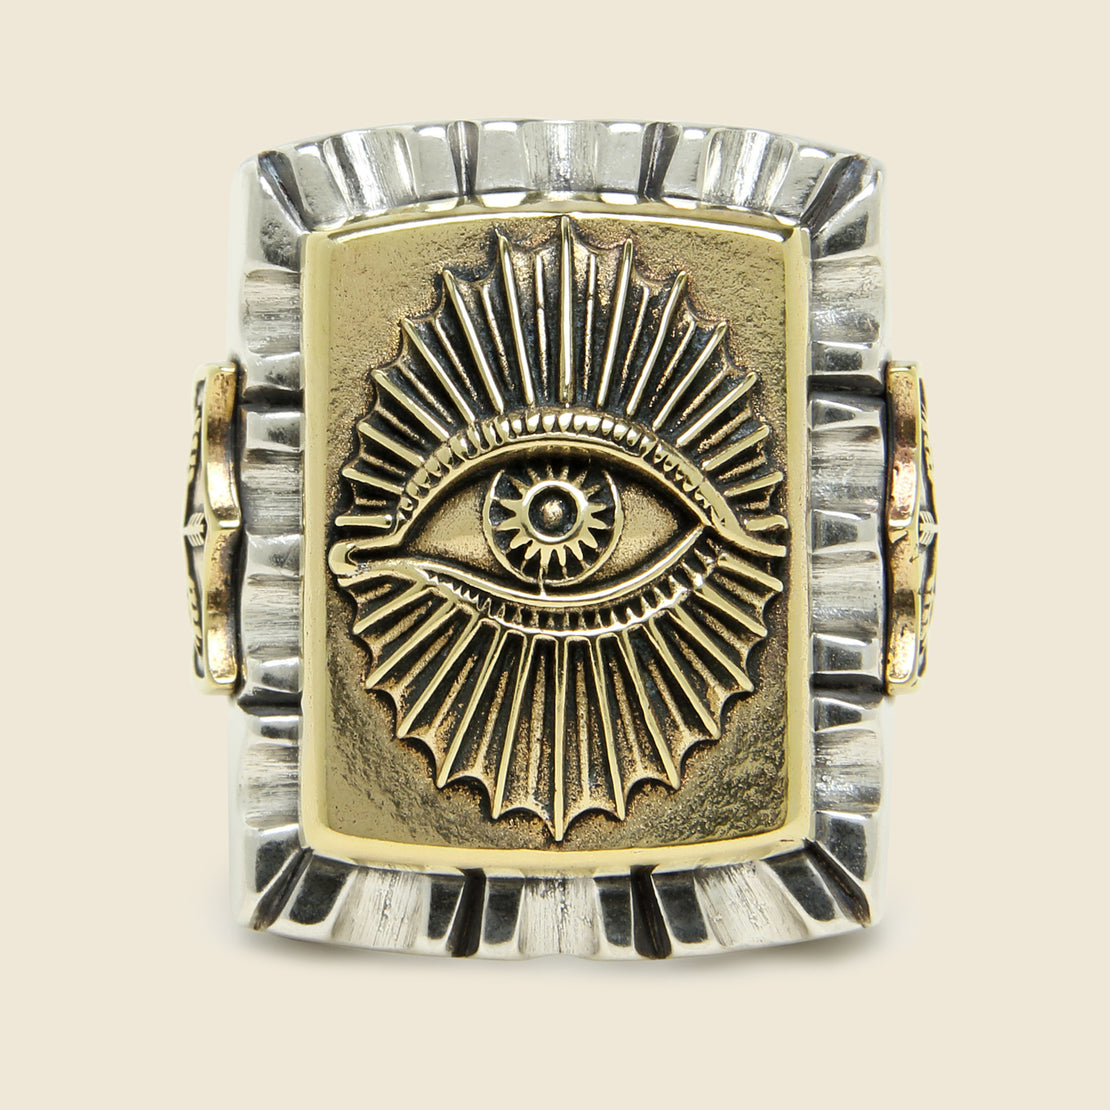 All Seeing Eye Souvenir Ring - Silver/Brass